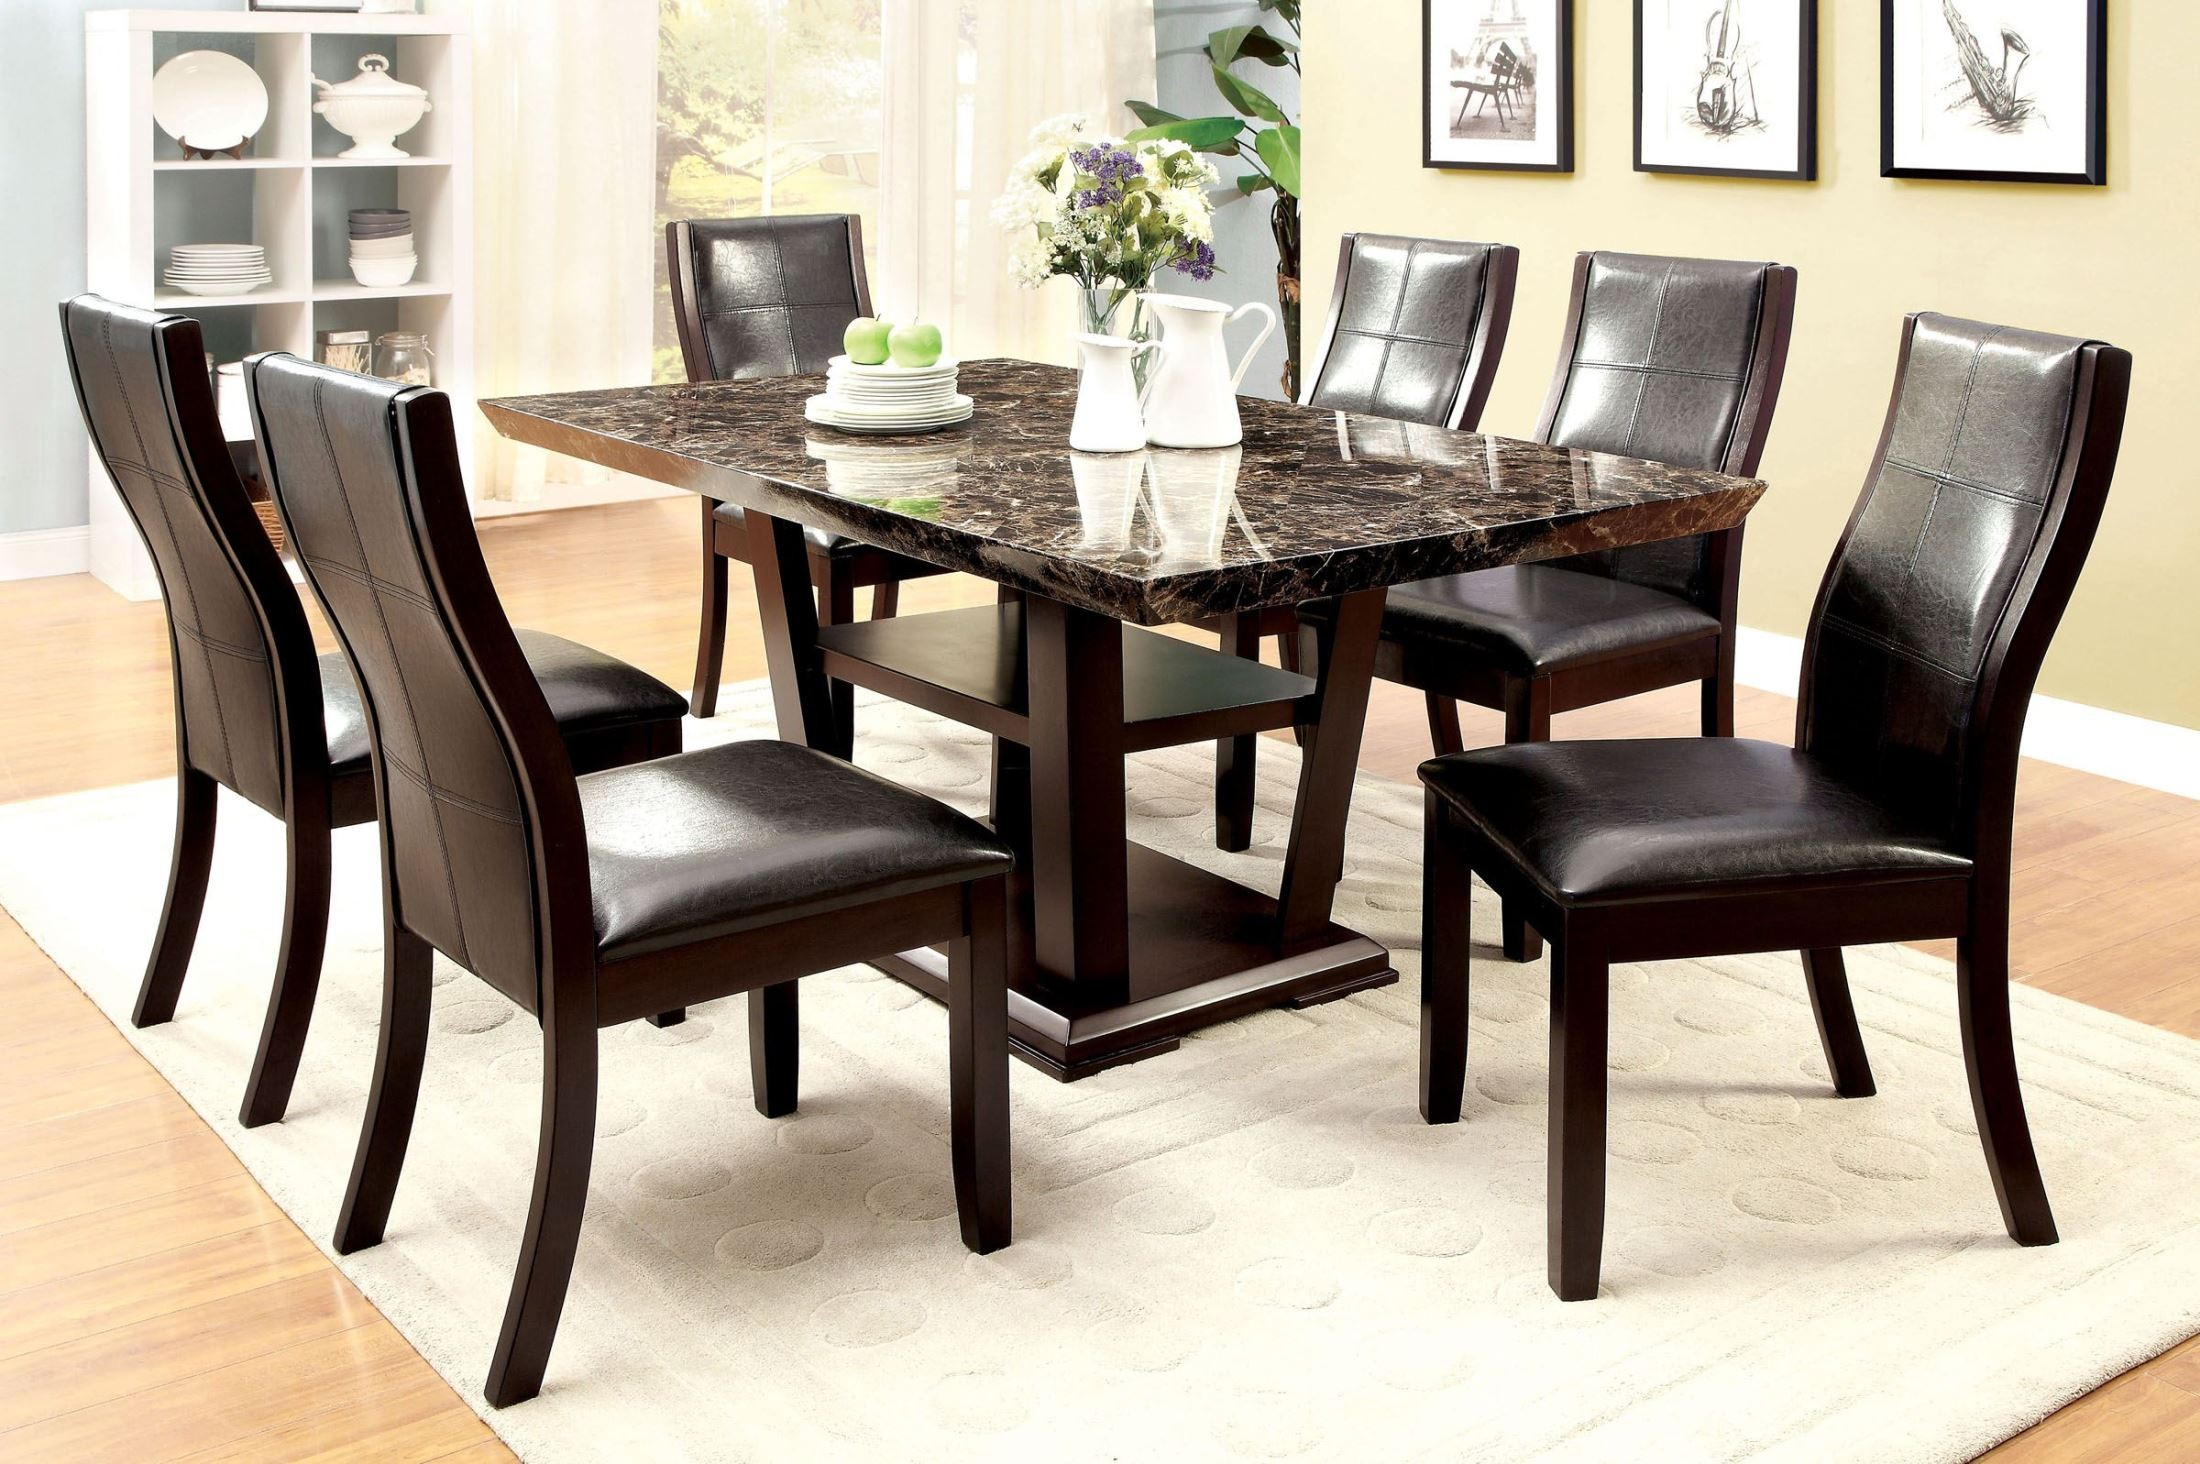 clayton i dark cherry rectangular pedestal dining room set from furniture of america cm3933t. Black Bedroom Furniture Sets. Home Design Ideas